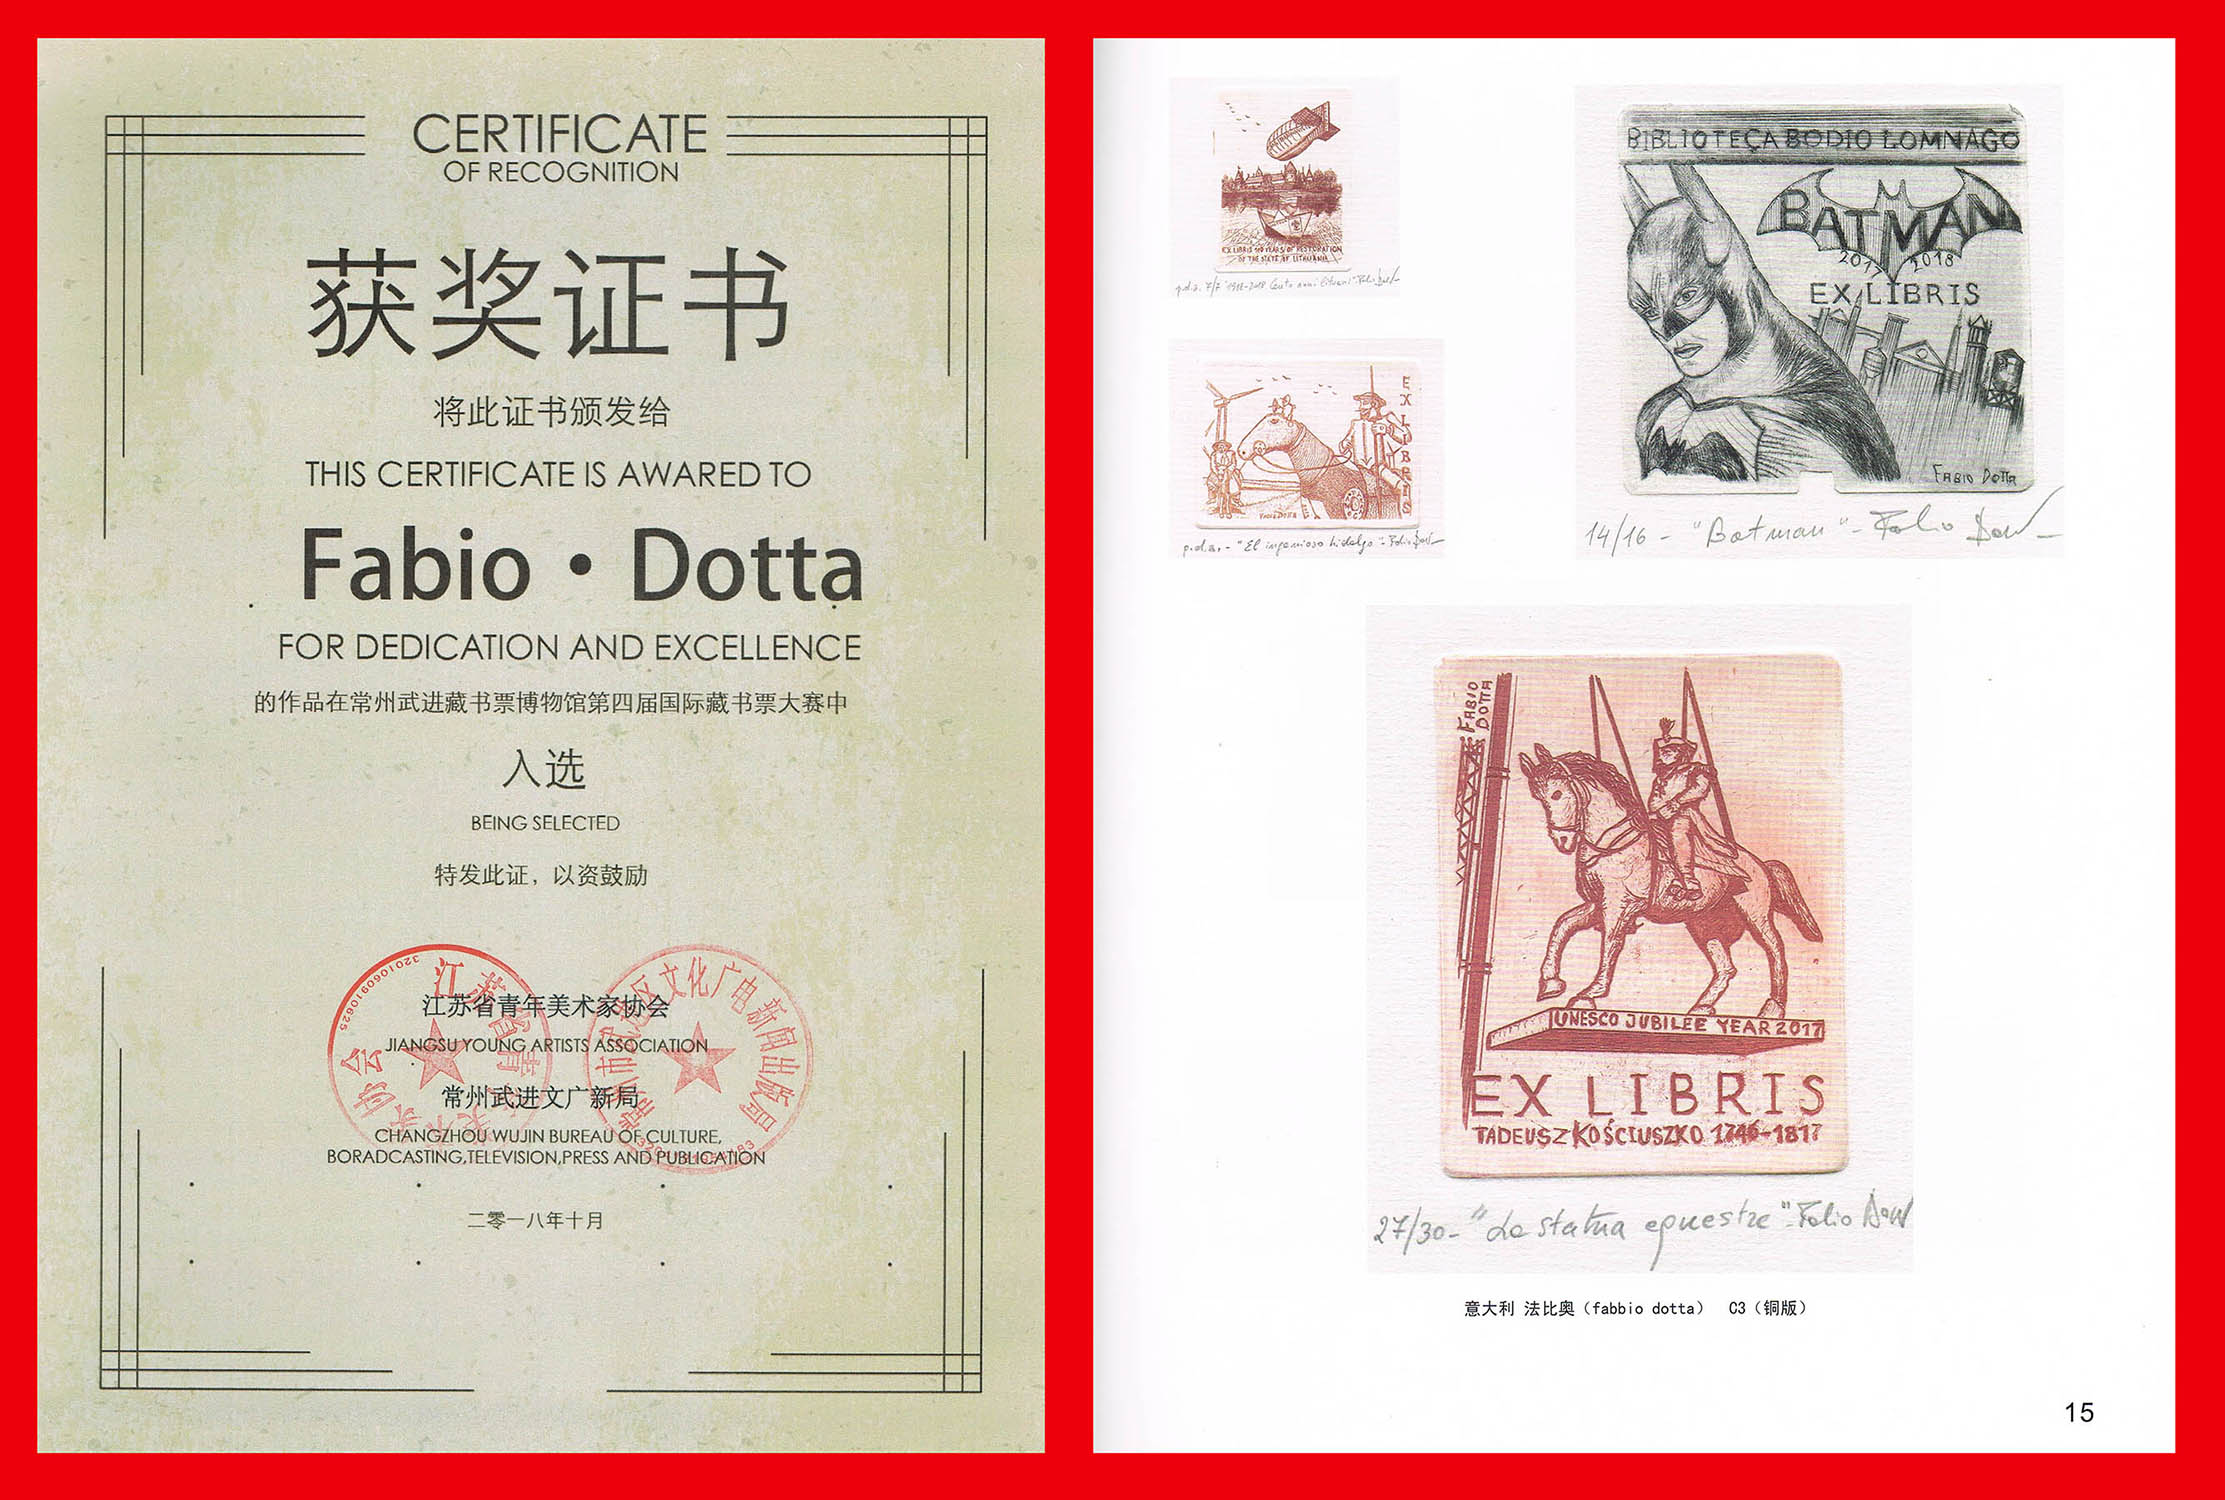 FABIO DOTTA CATALOGO 4th INTERNAZIONALE CHANG ZHOU